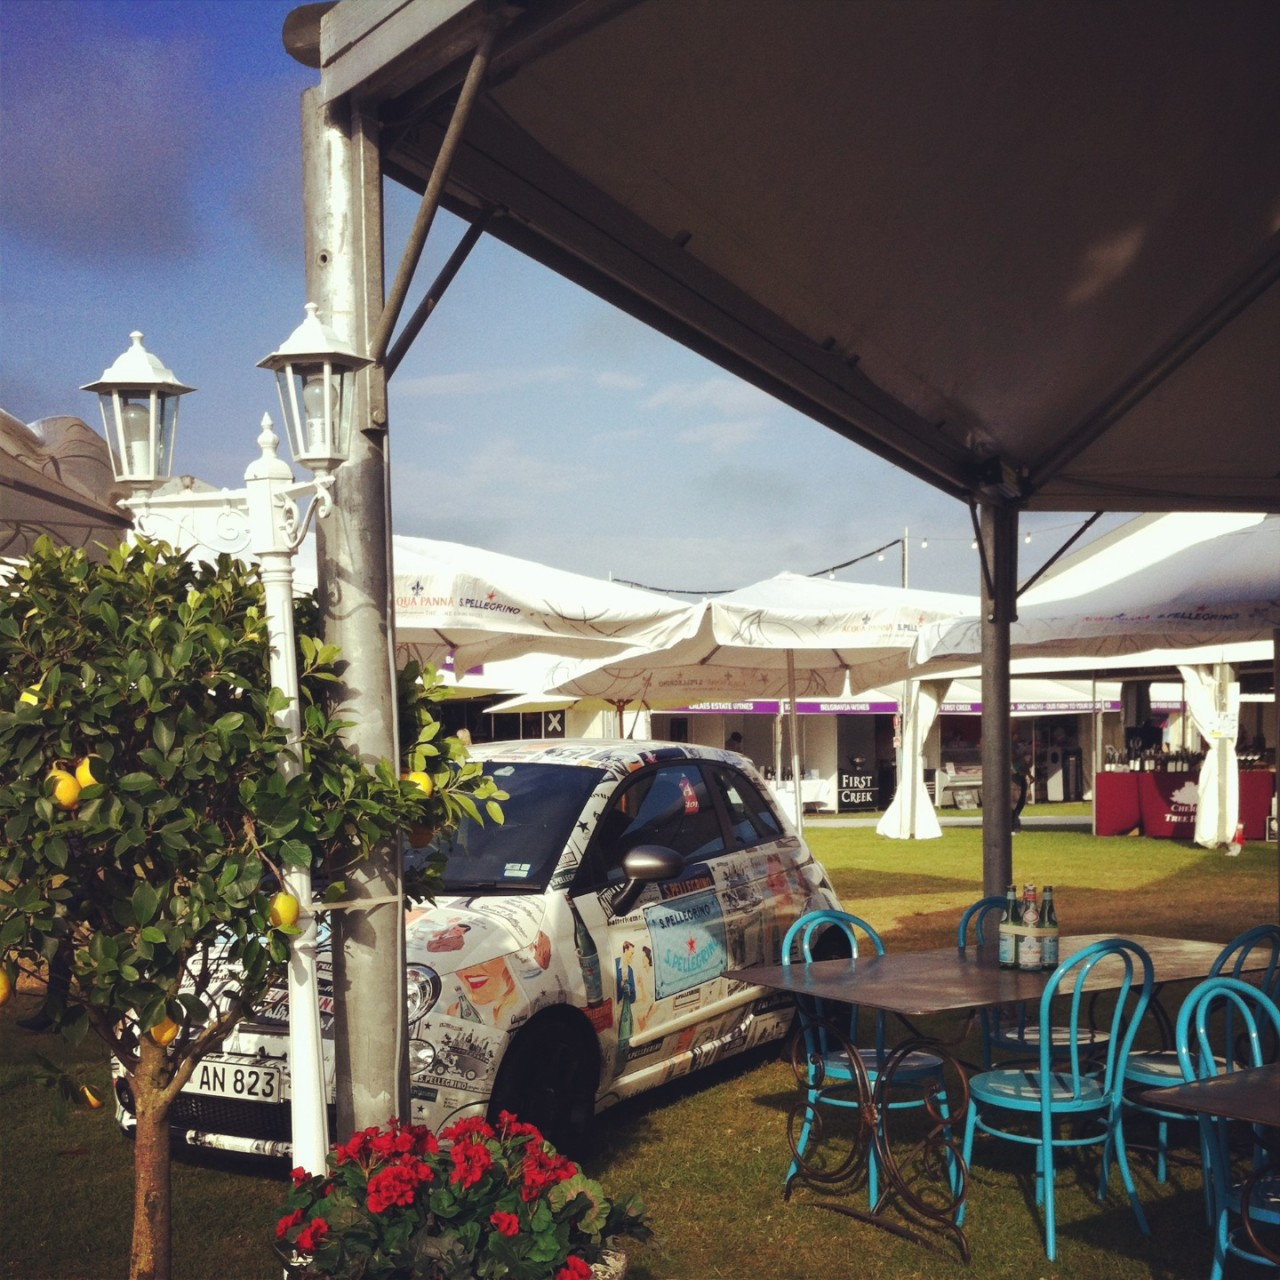 The Sanpellegrino stand at Sydney's Taste Festival.  Design & Creative magic by AZBcreative.  Furniture by Canalside Interiors.